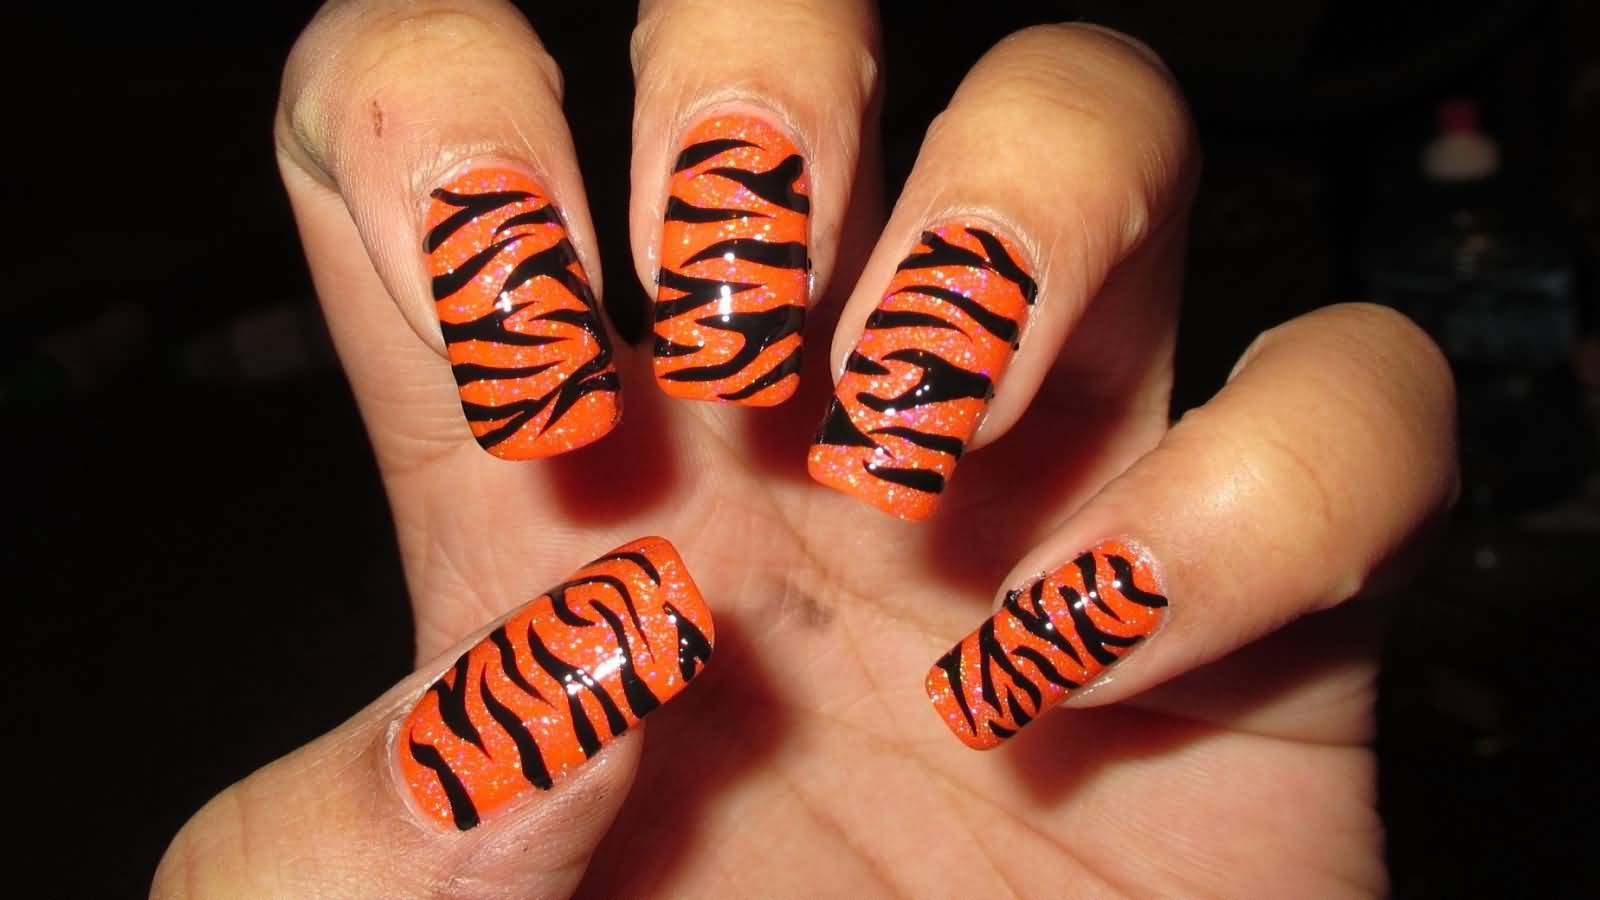 Nail Art Designs In Orange And Black Hession Hairdressing